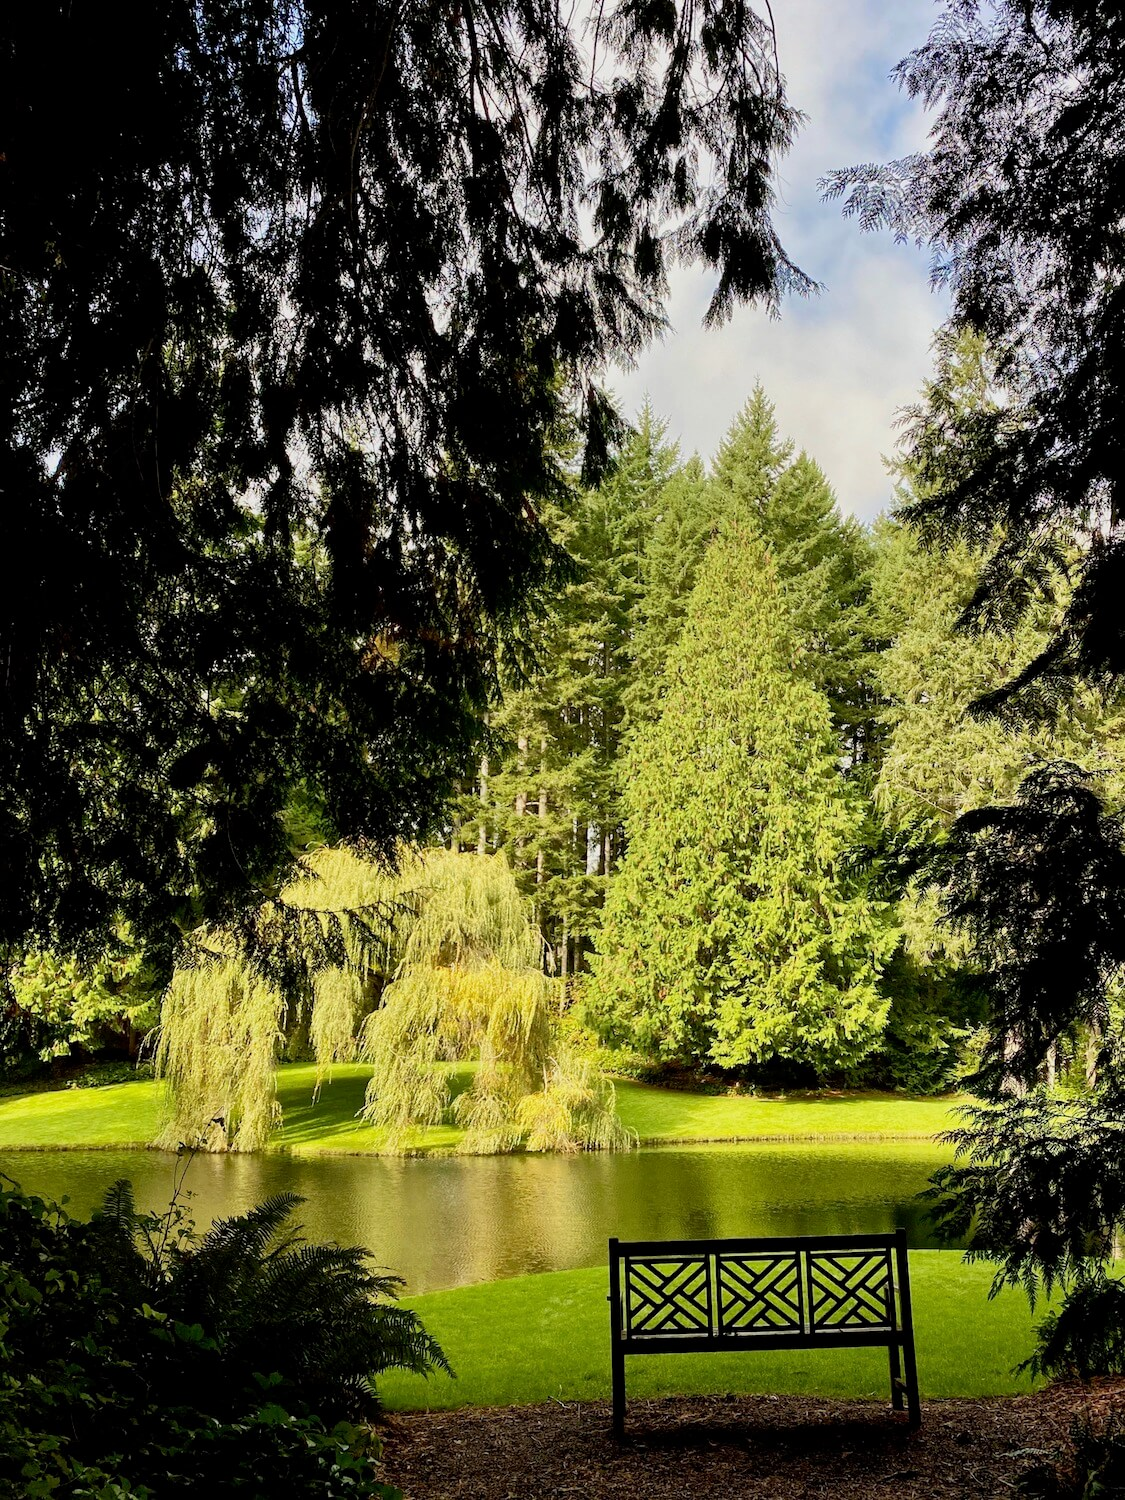 A bench with wooden patchwork design sits on a area of brown wood chips and looks out toward a quiet greenish lake with a willow tree flowing into the water on the other side of the lake. There are evergreen trees all around this scene.